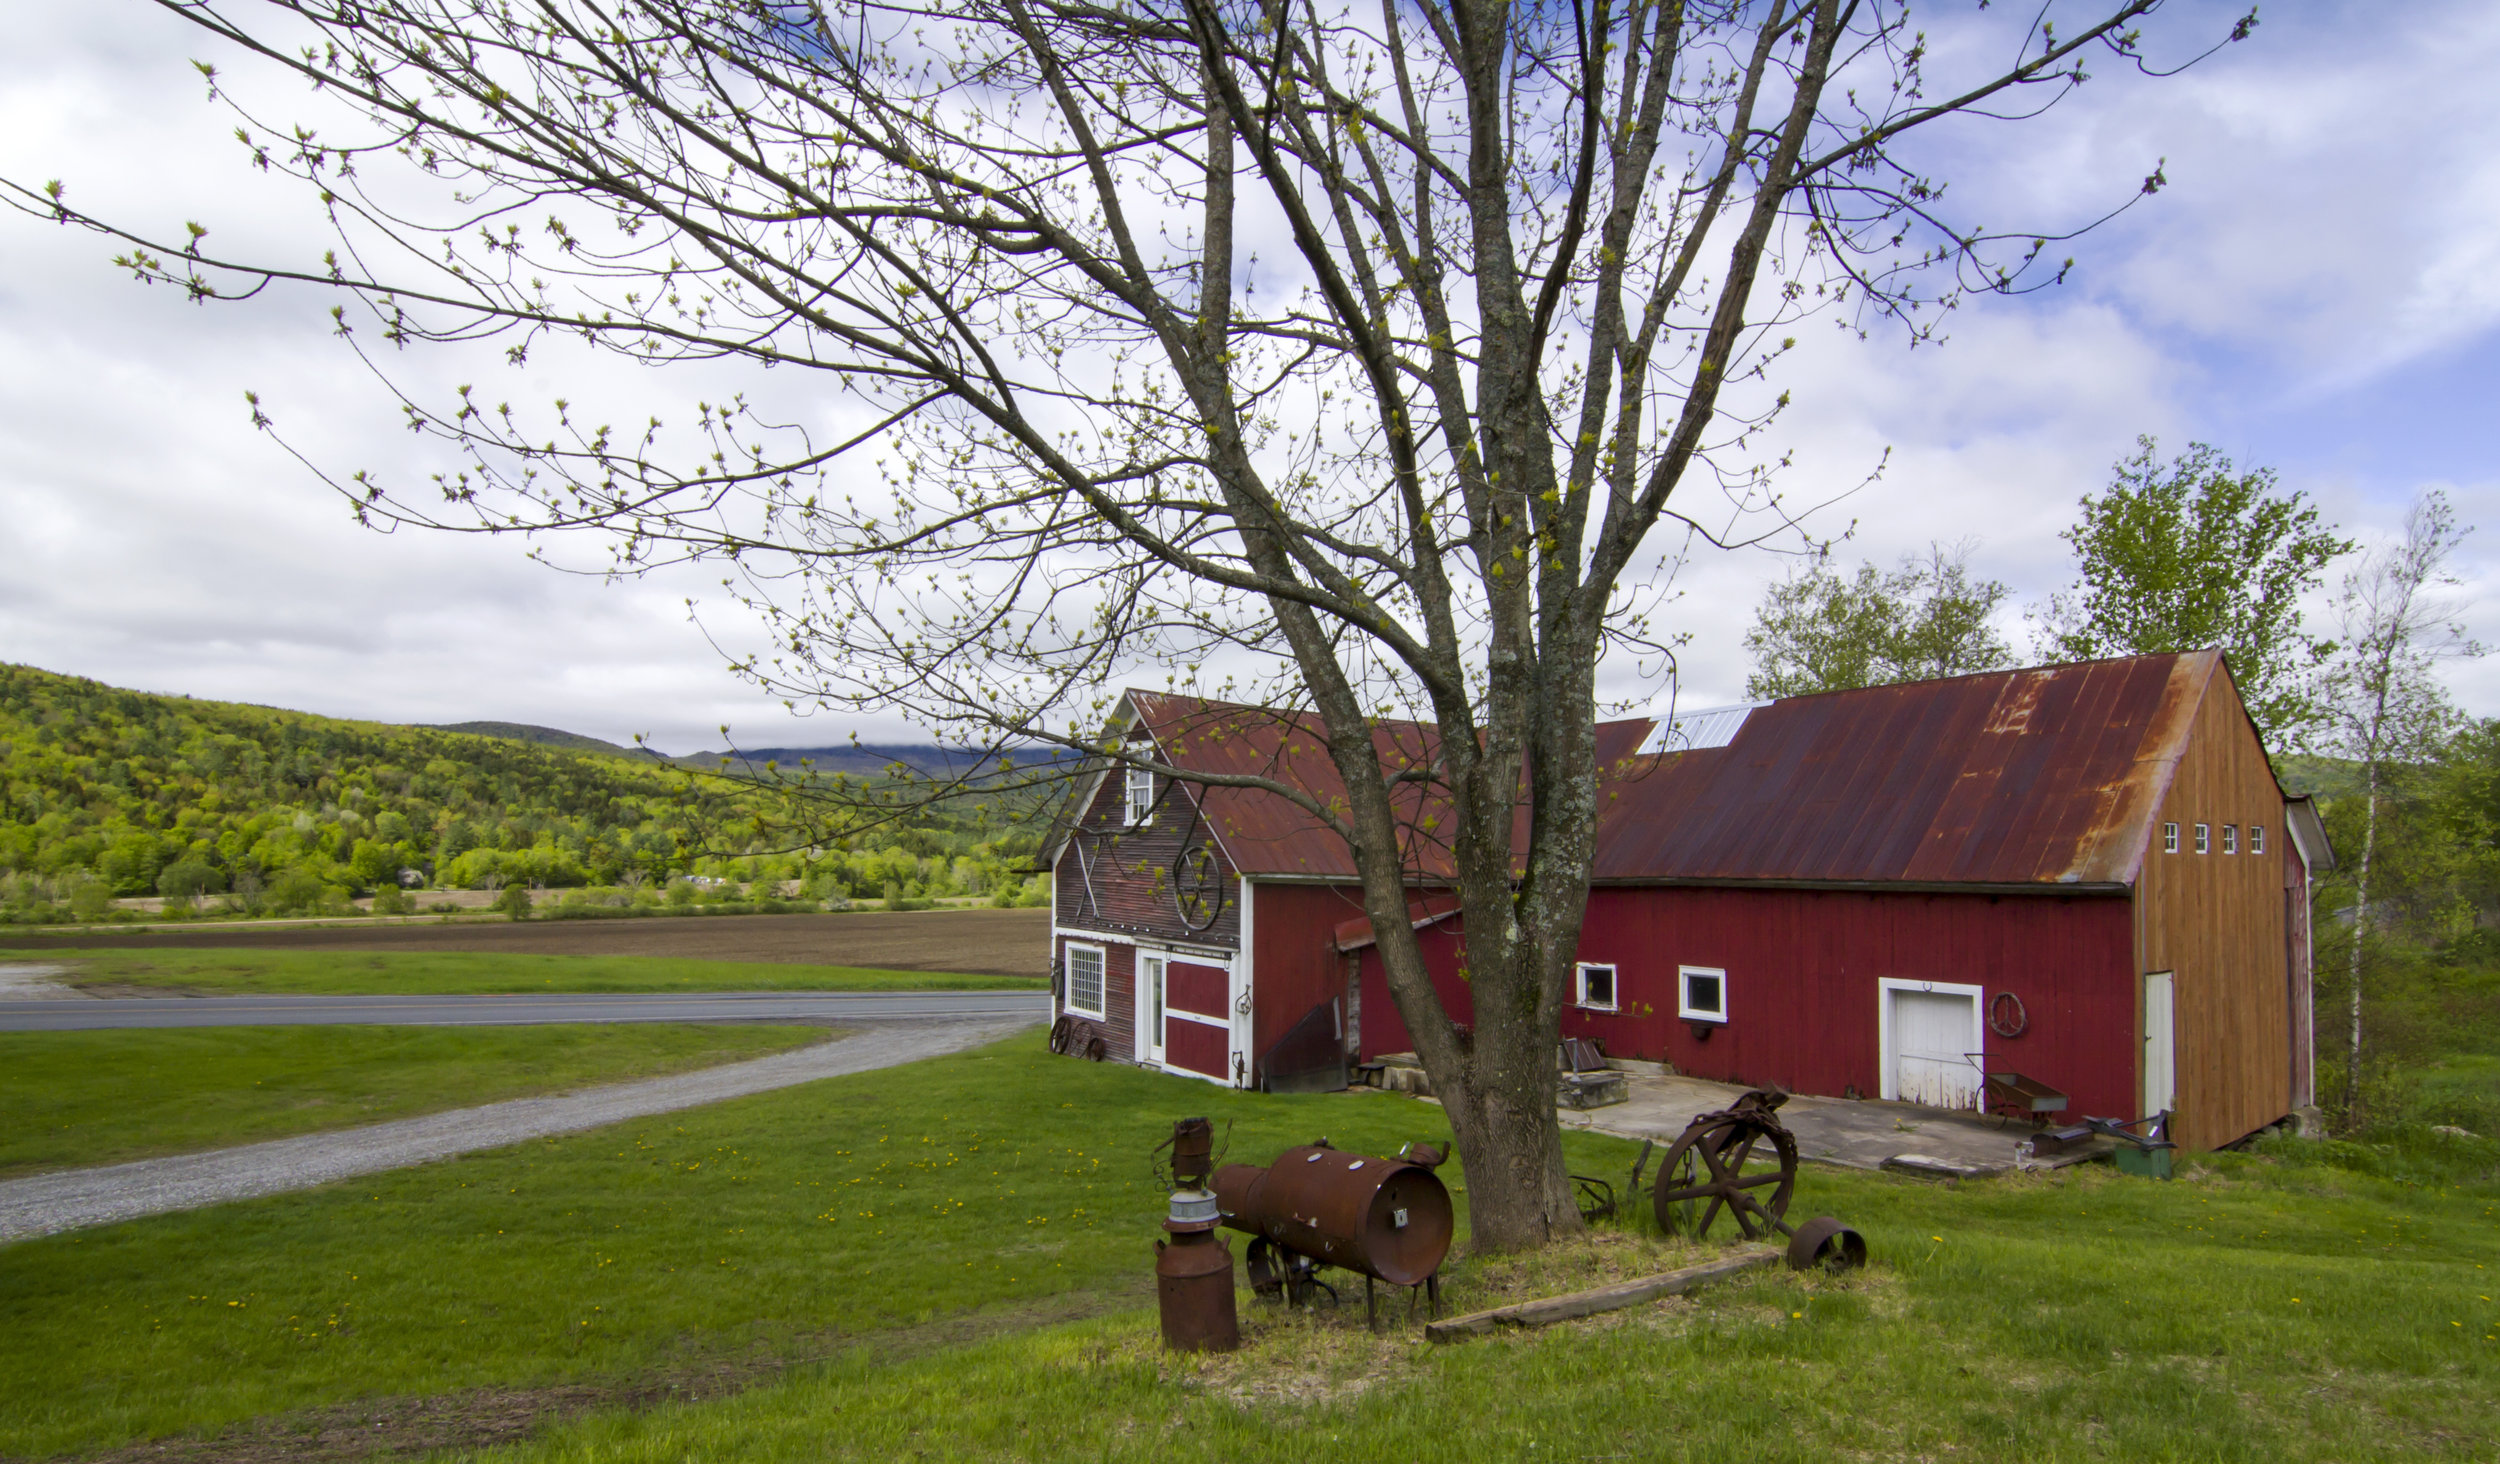 The Maple Hill Barn